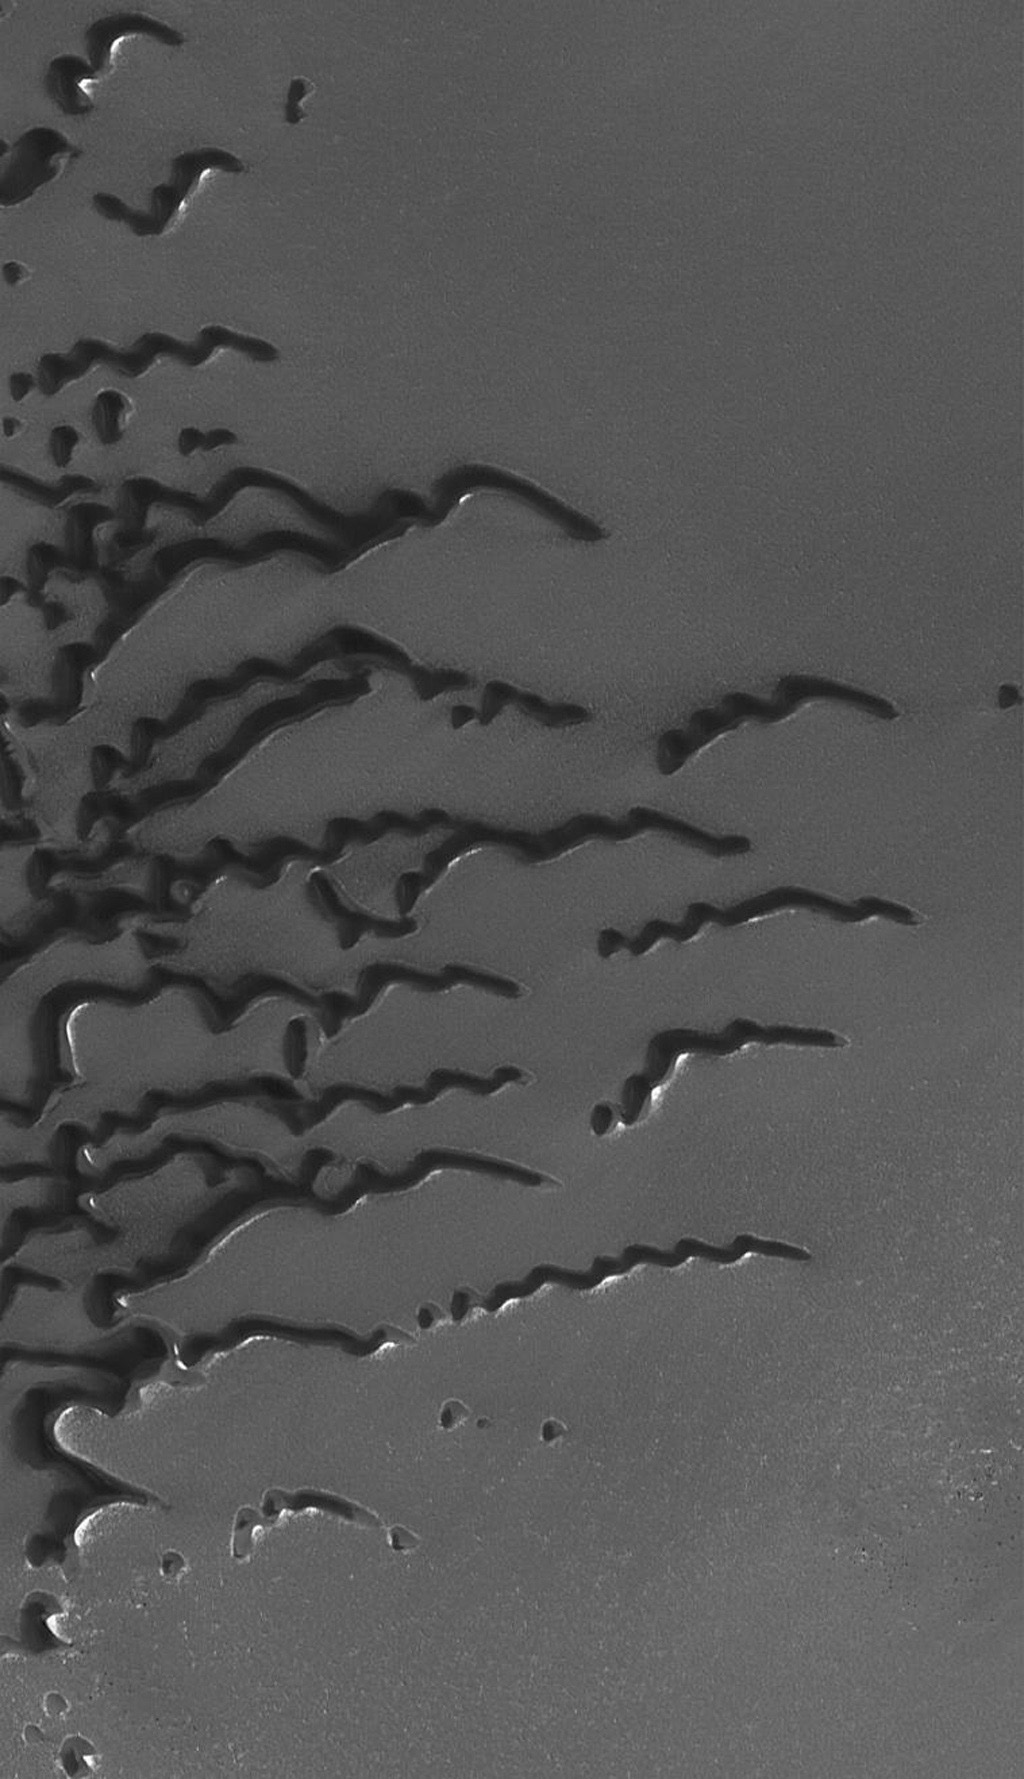 NASA's Mars Global Surveyor shows a suite of dunes in one of the several north polar dune fields. The bright surfaces adjacent to some of the dunes are patches of frost